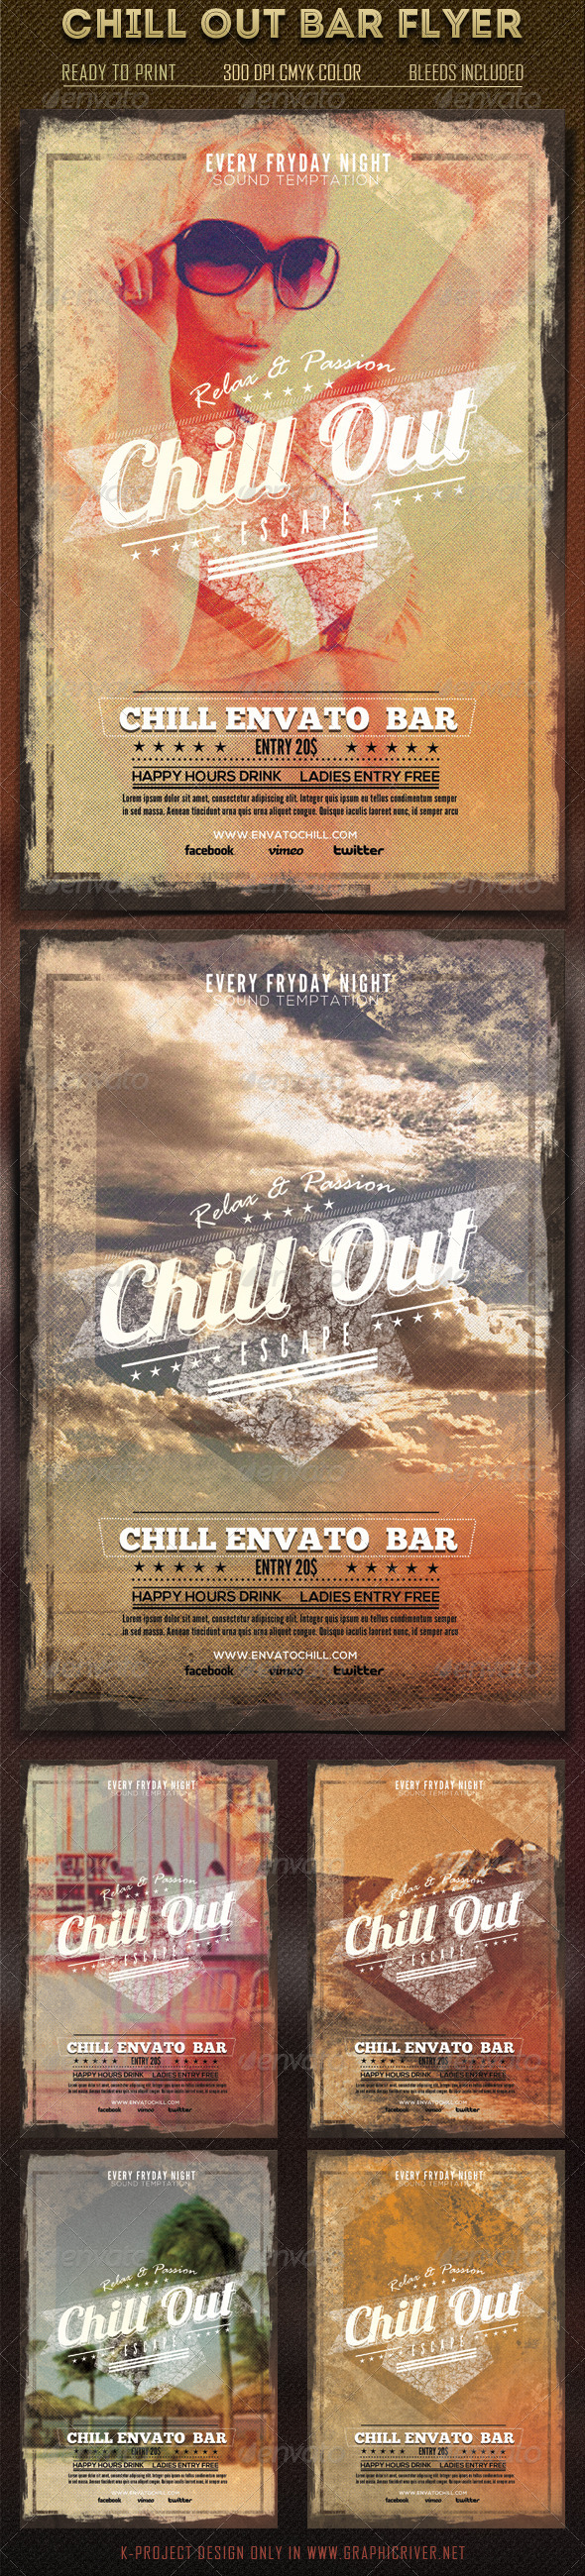 Chill Out Bar Flyer